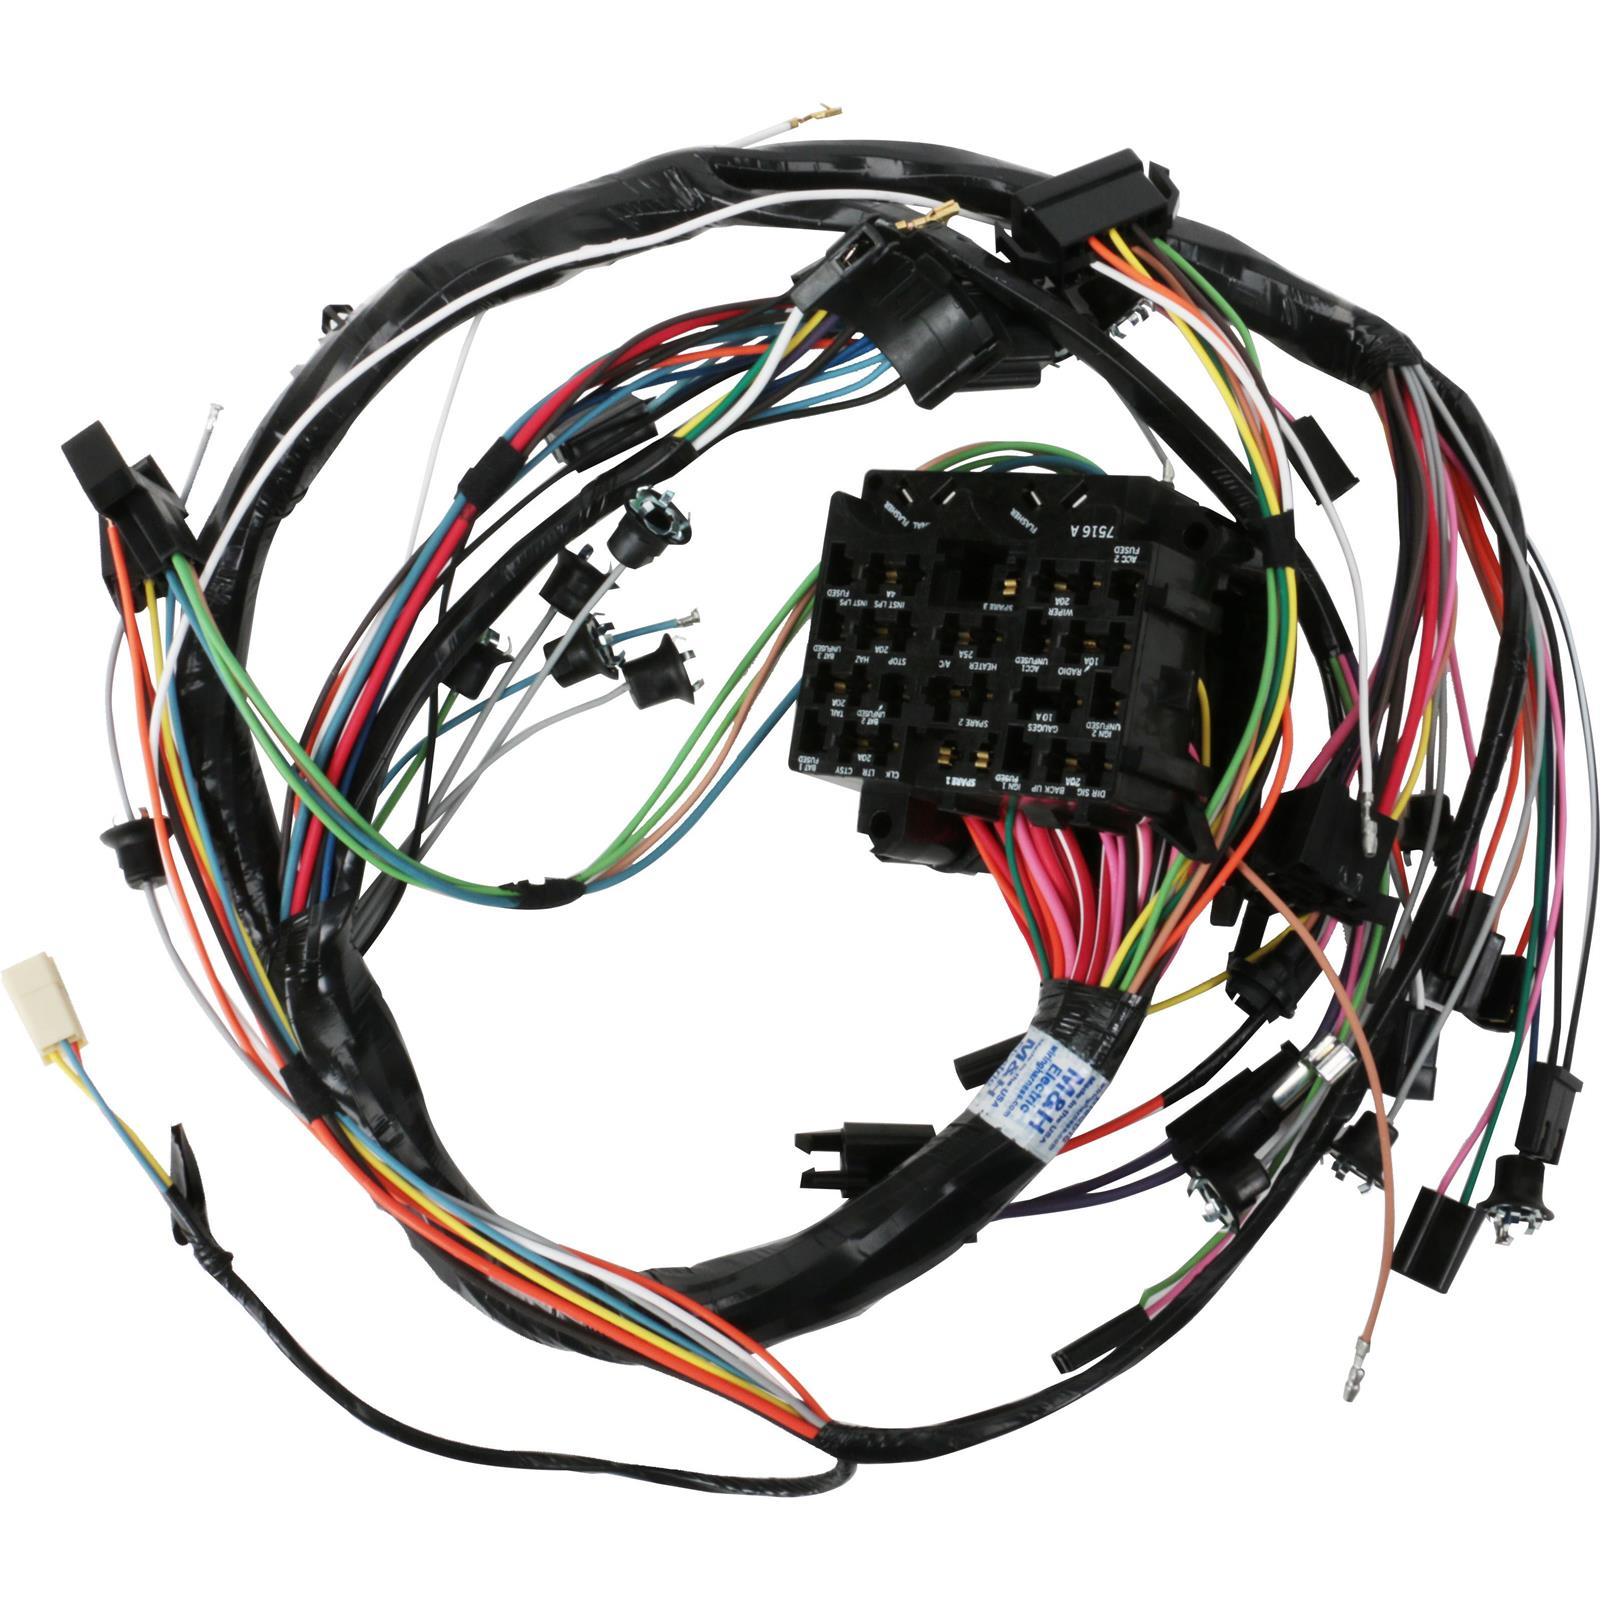 Mh Electric 39045 Dash Wiring Harness 1968 Gm A Body W Gauges Kit For 5 0 Efi Engine 2